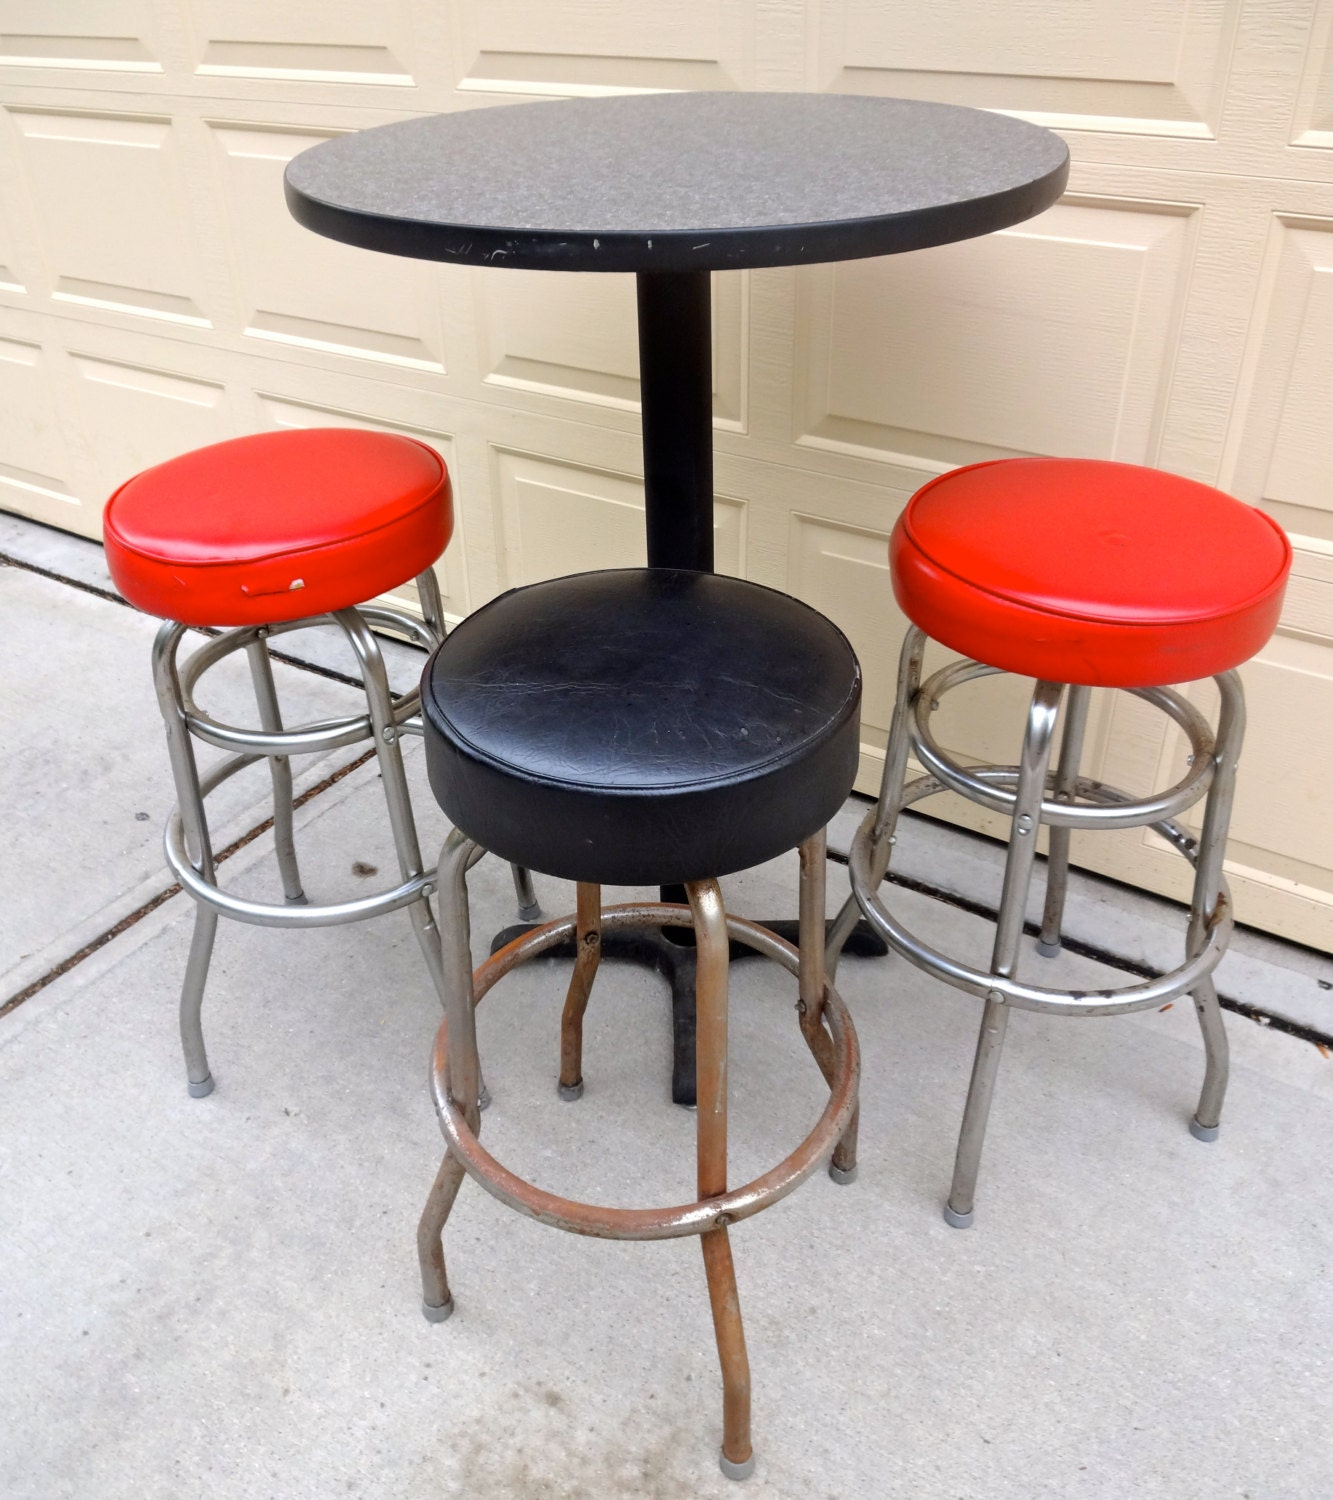 Vintage Red and Black Vinyl Swivel Bar Stools and Table  : ilfullxfull788260242odhw from hautejuice.wordpress.com size 1333 x 1500 jpeg 368kB